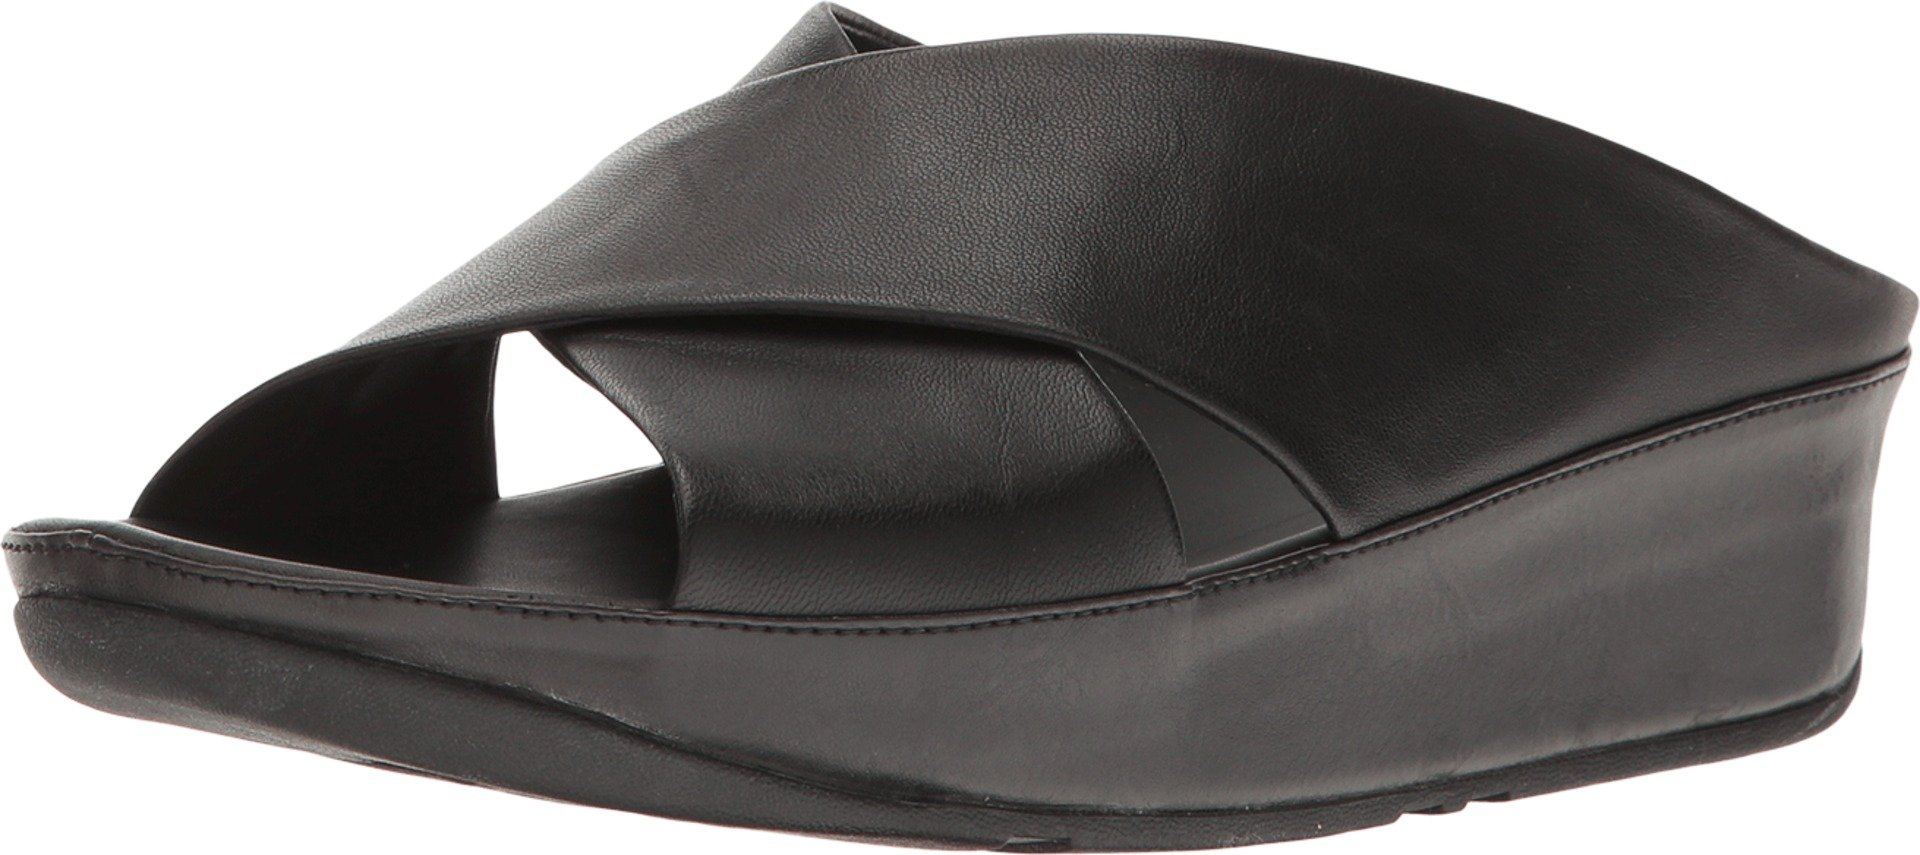 FitFlop Women's Kys Leather Slide Sandals All Black 11